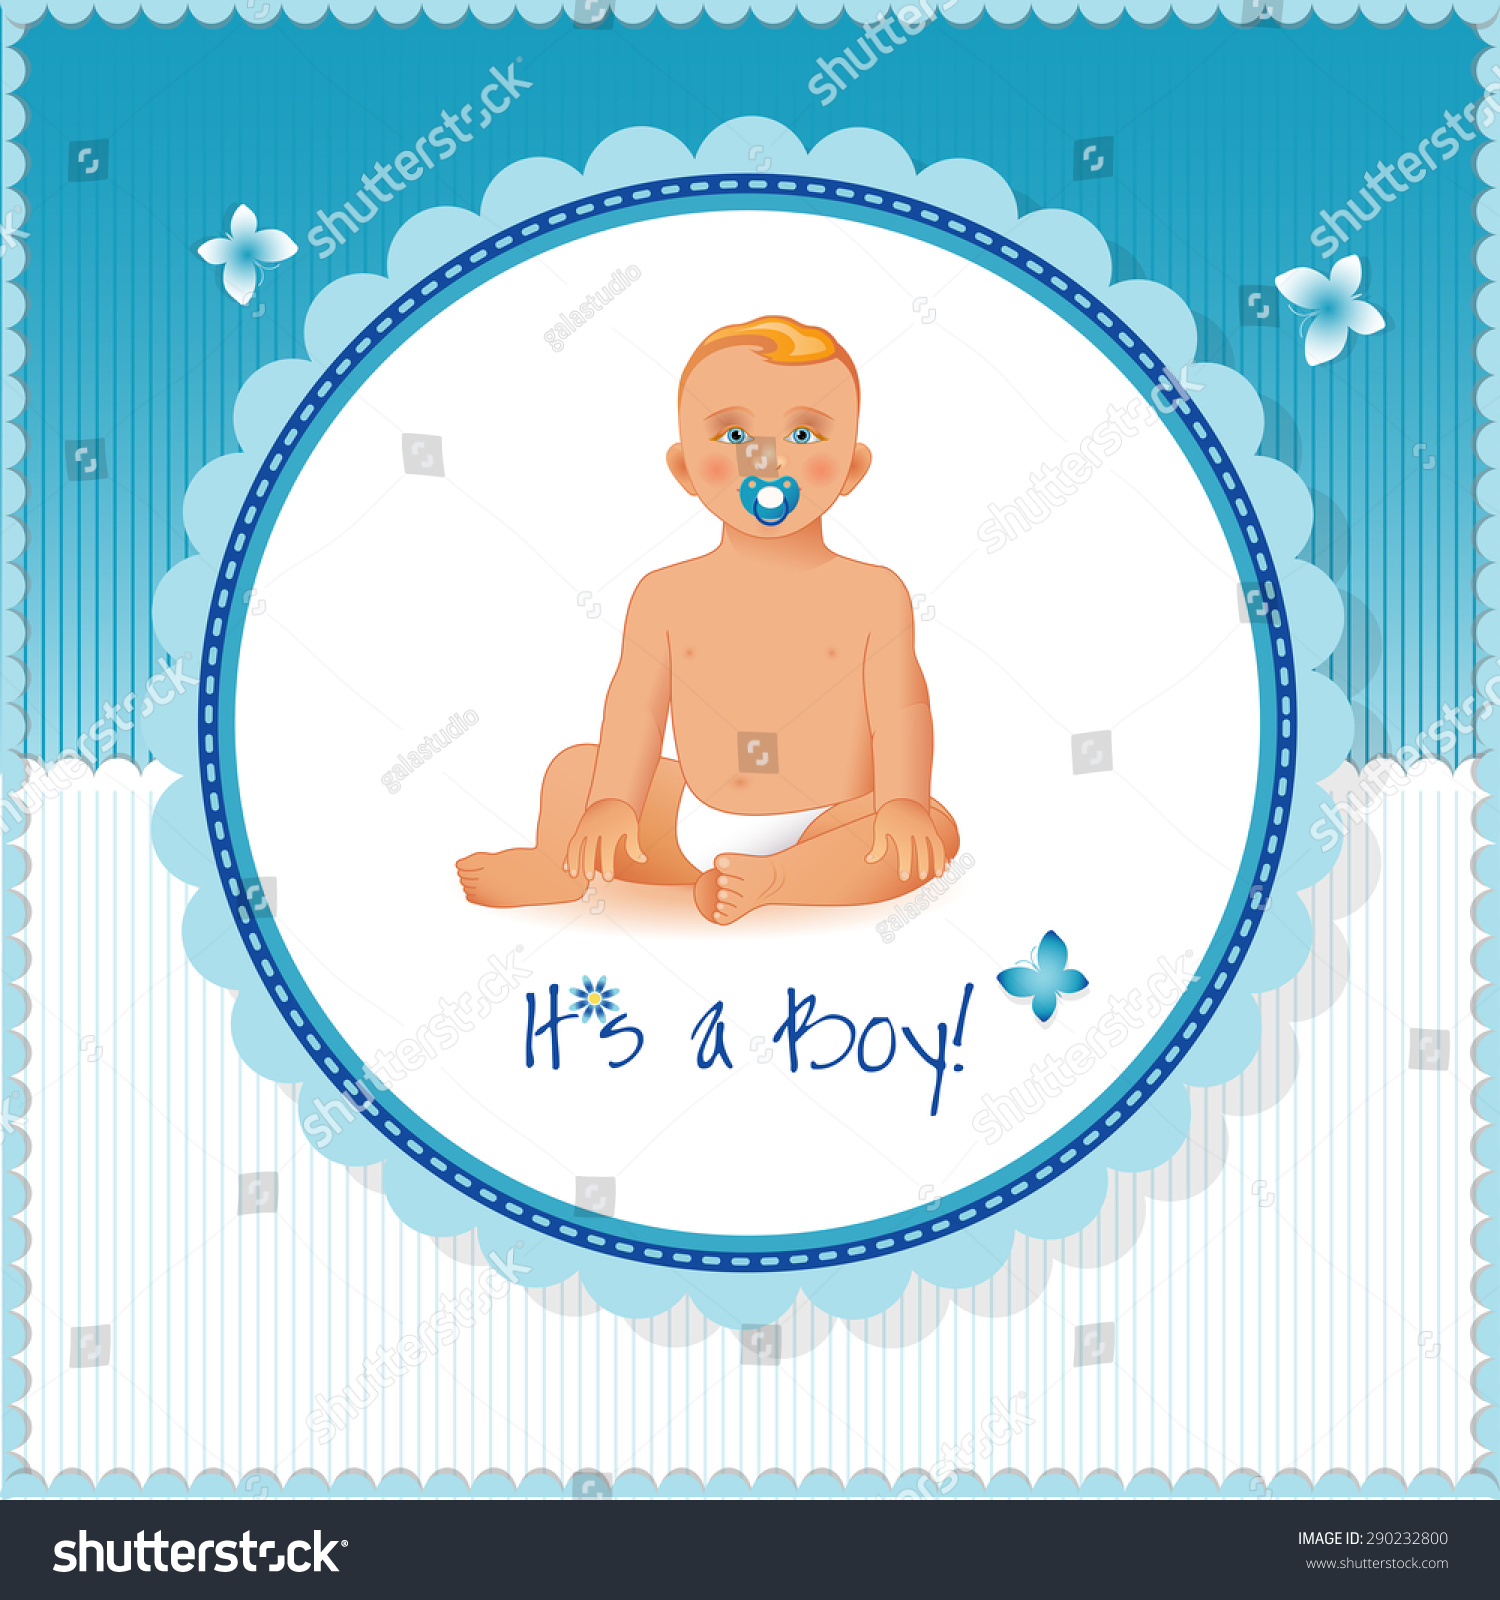 it's a boy card or background. sweet little boy sitting and smiling